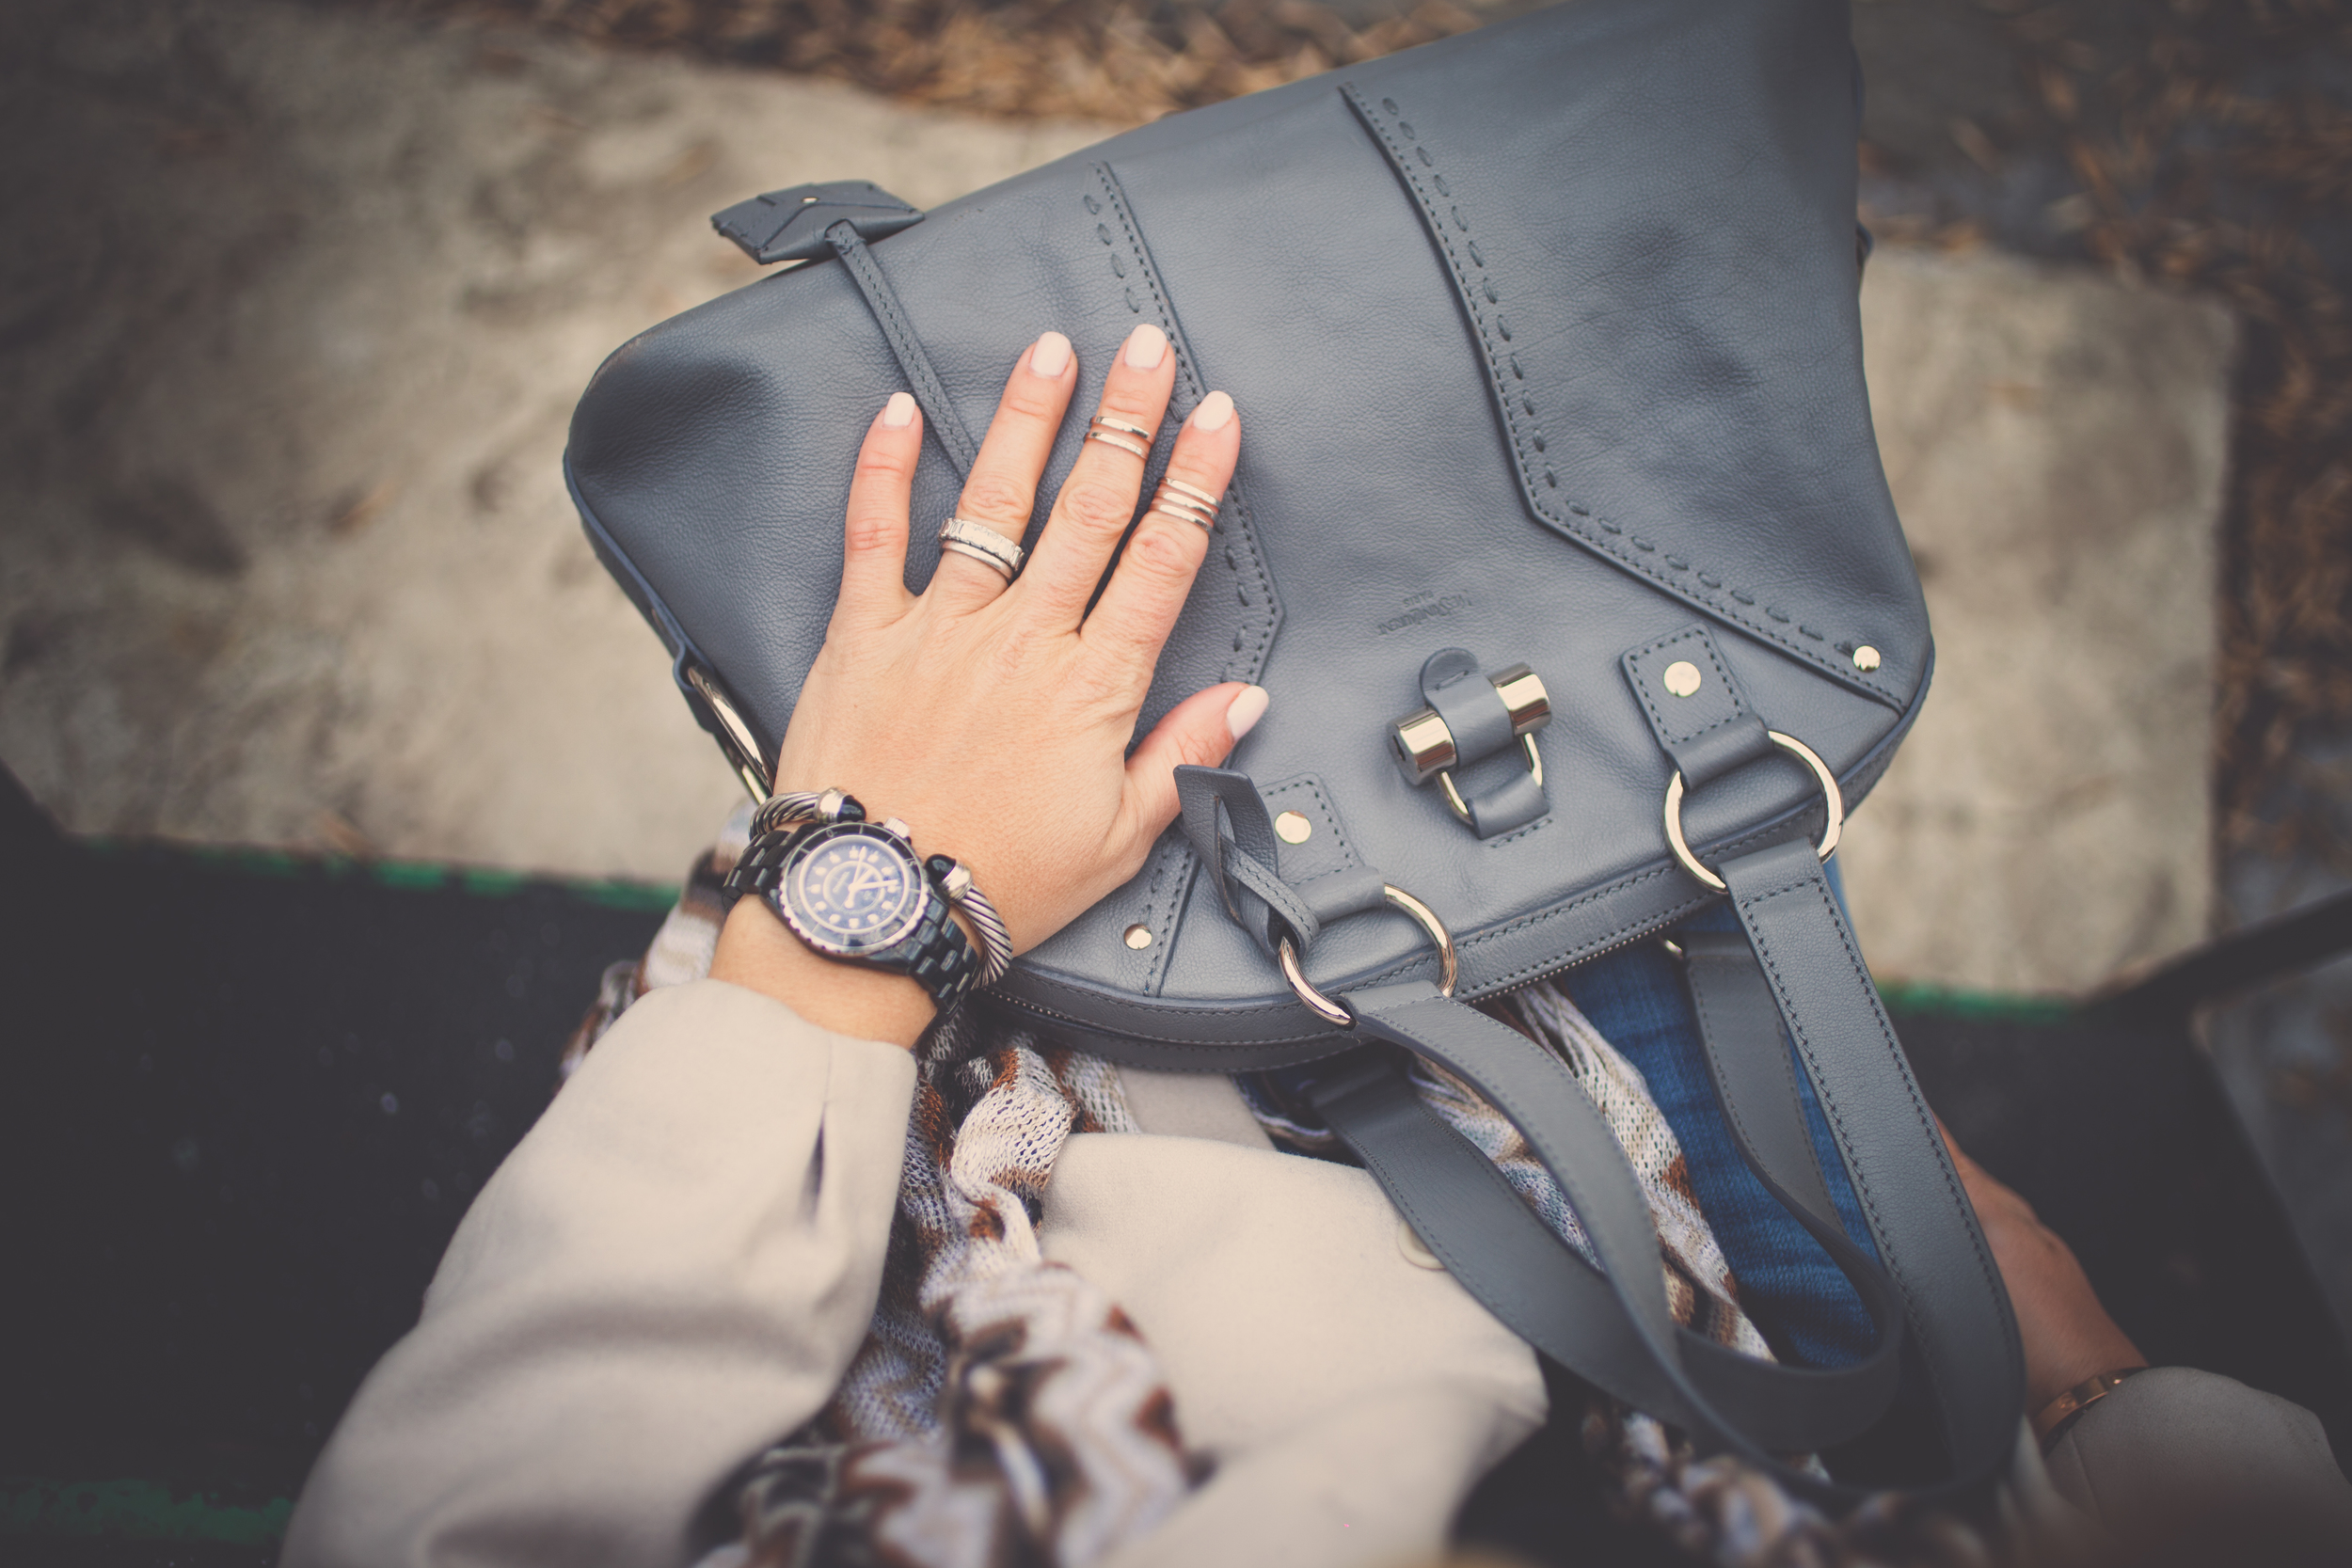 muse YSL bag mademoiselle jules fashion blog trends for spring layering ring party